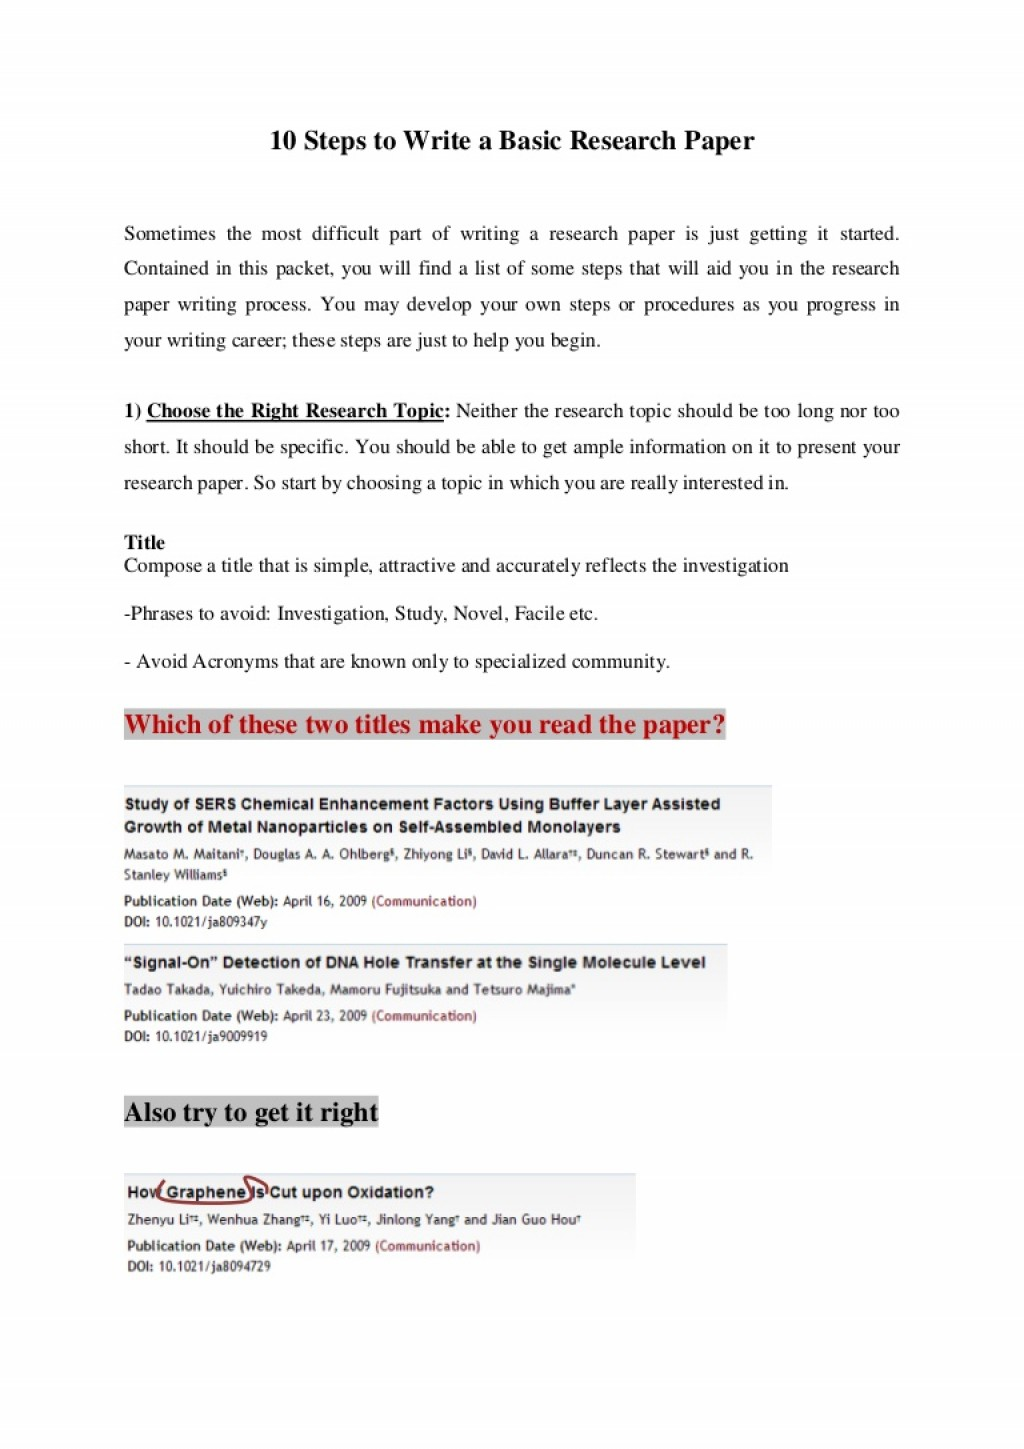 001 10stepstowriteabasicresearchpaper Thumbnail Research Paper Steps To Write Unbelievable 10 A Basic Writing Ppt How Pdf Large